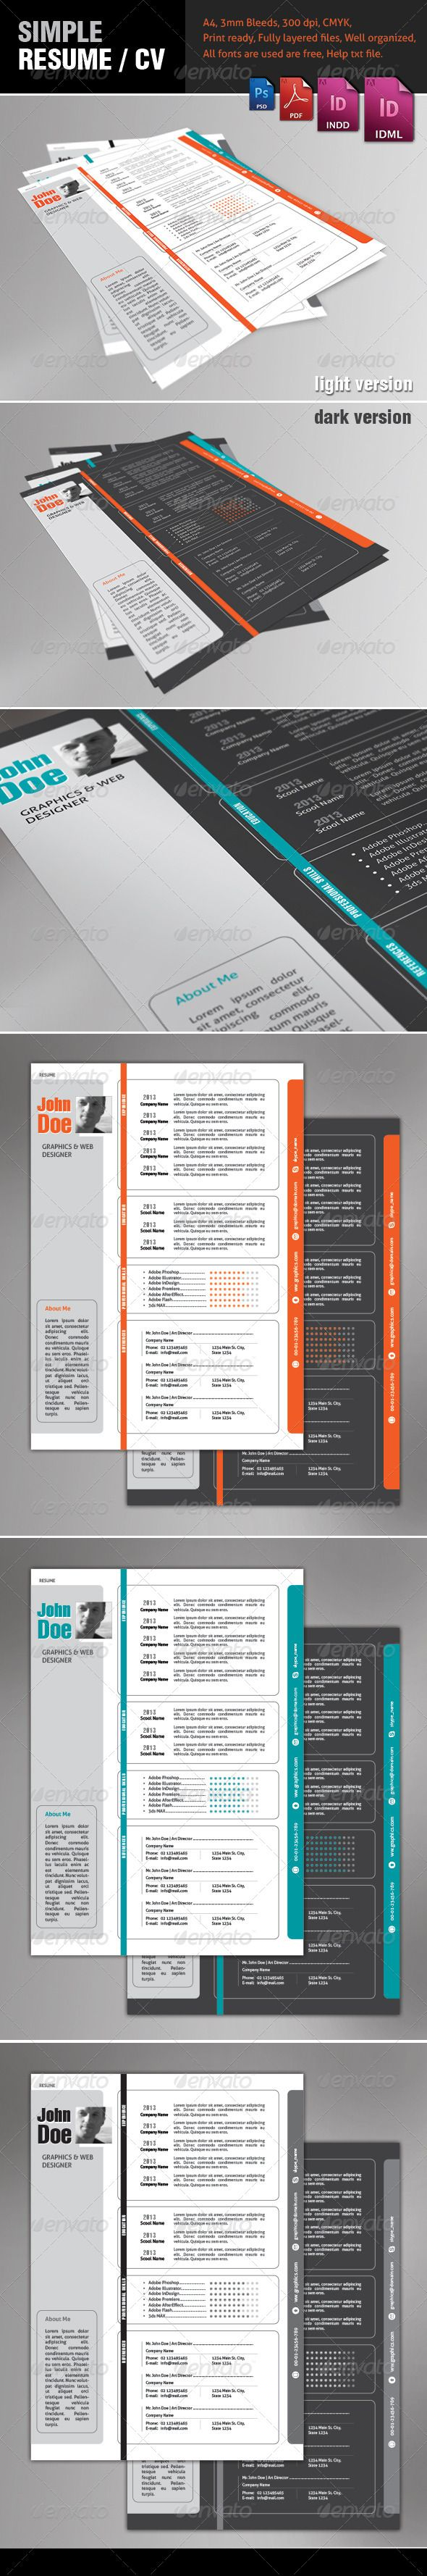 resume template  graphicriver resume template treecolor  6 x adobe photoshop files  6 x pdf